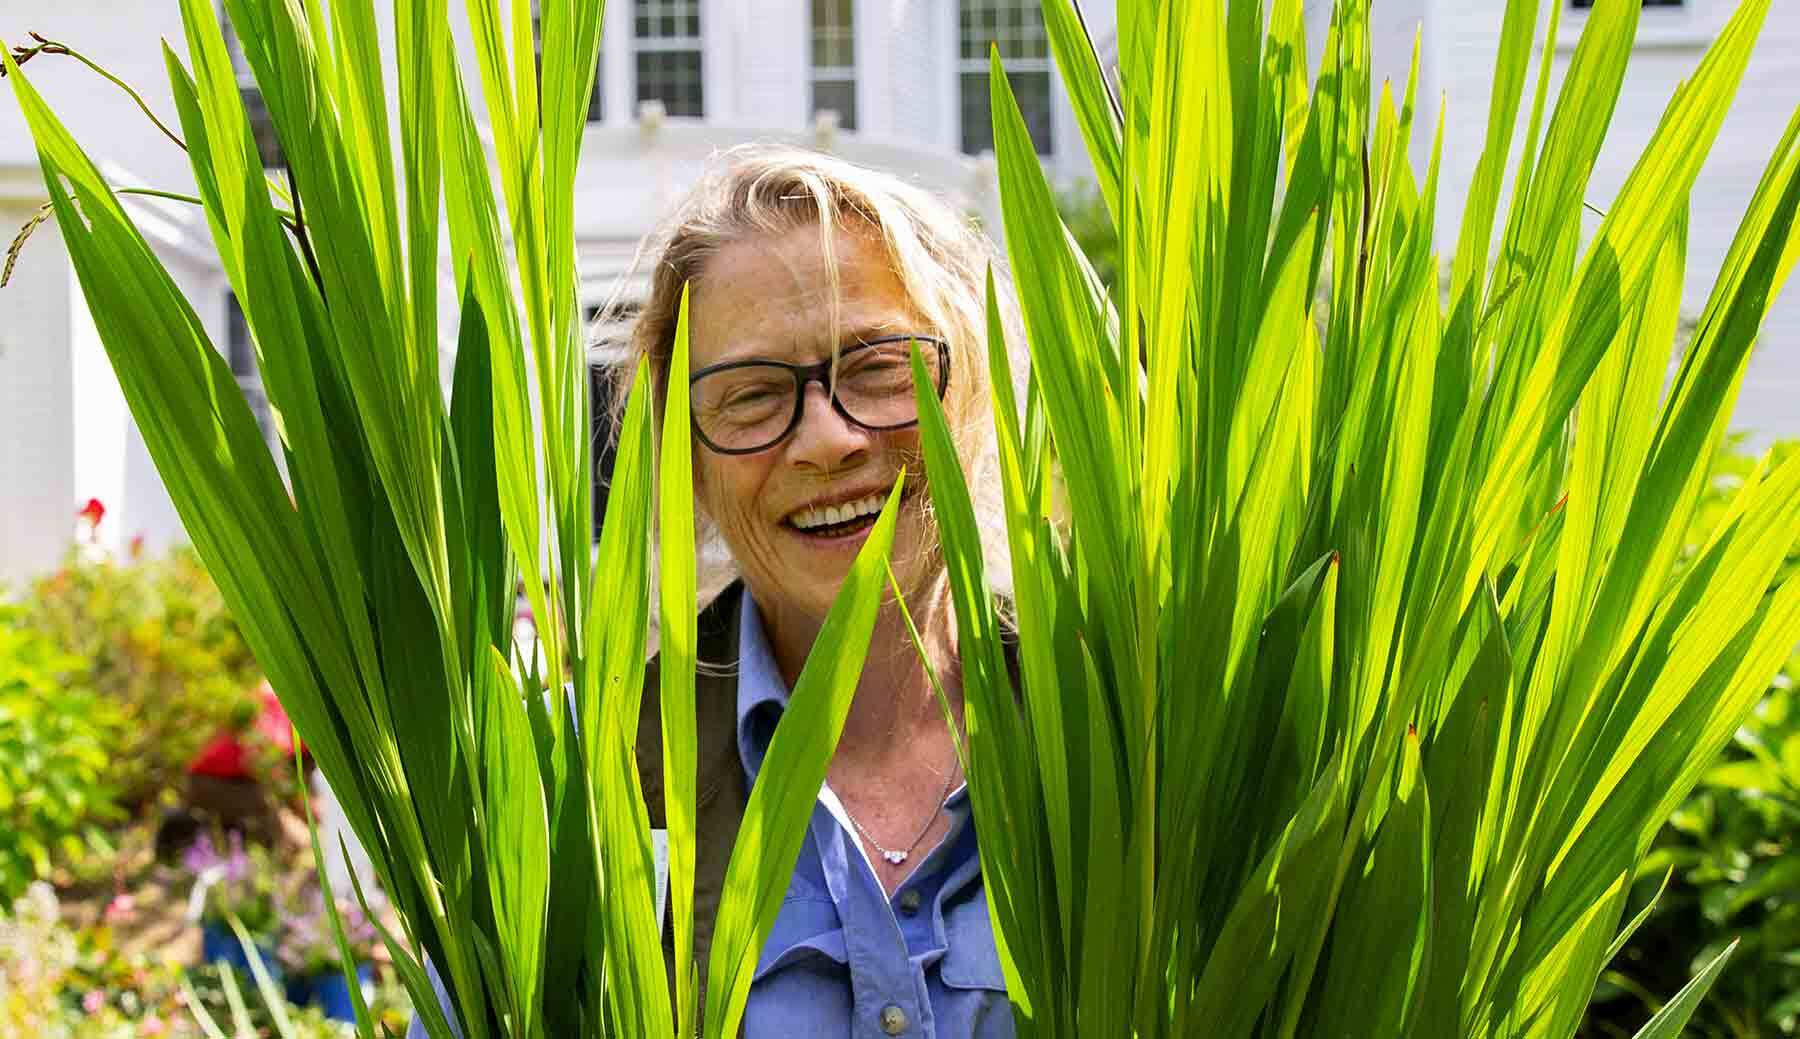 Head Gardener Robin Pydynkowski smiling, looking at viewer through tall green plant leaves